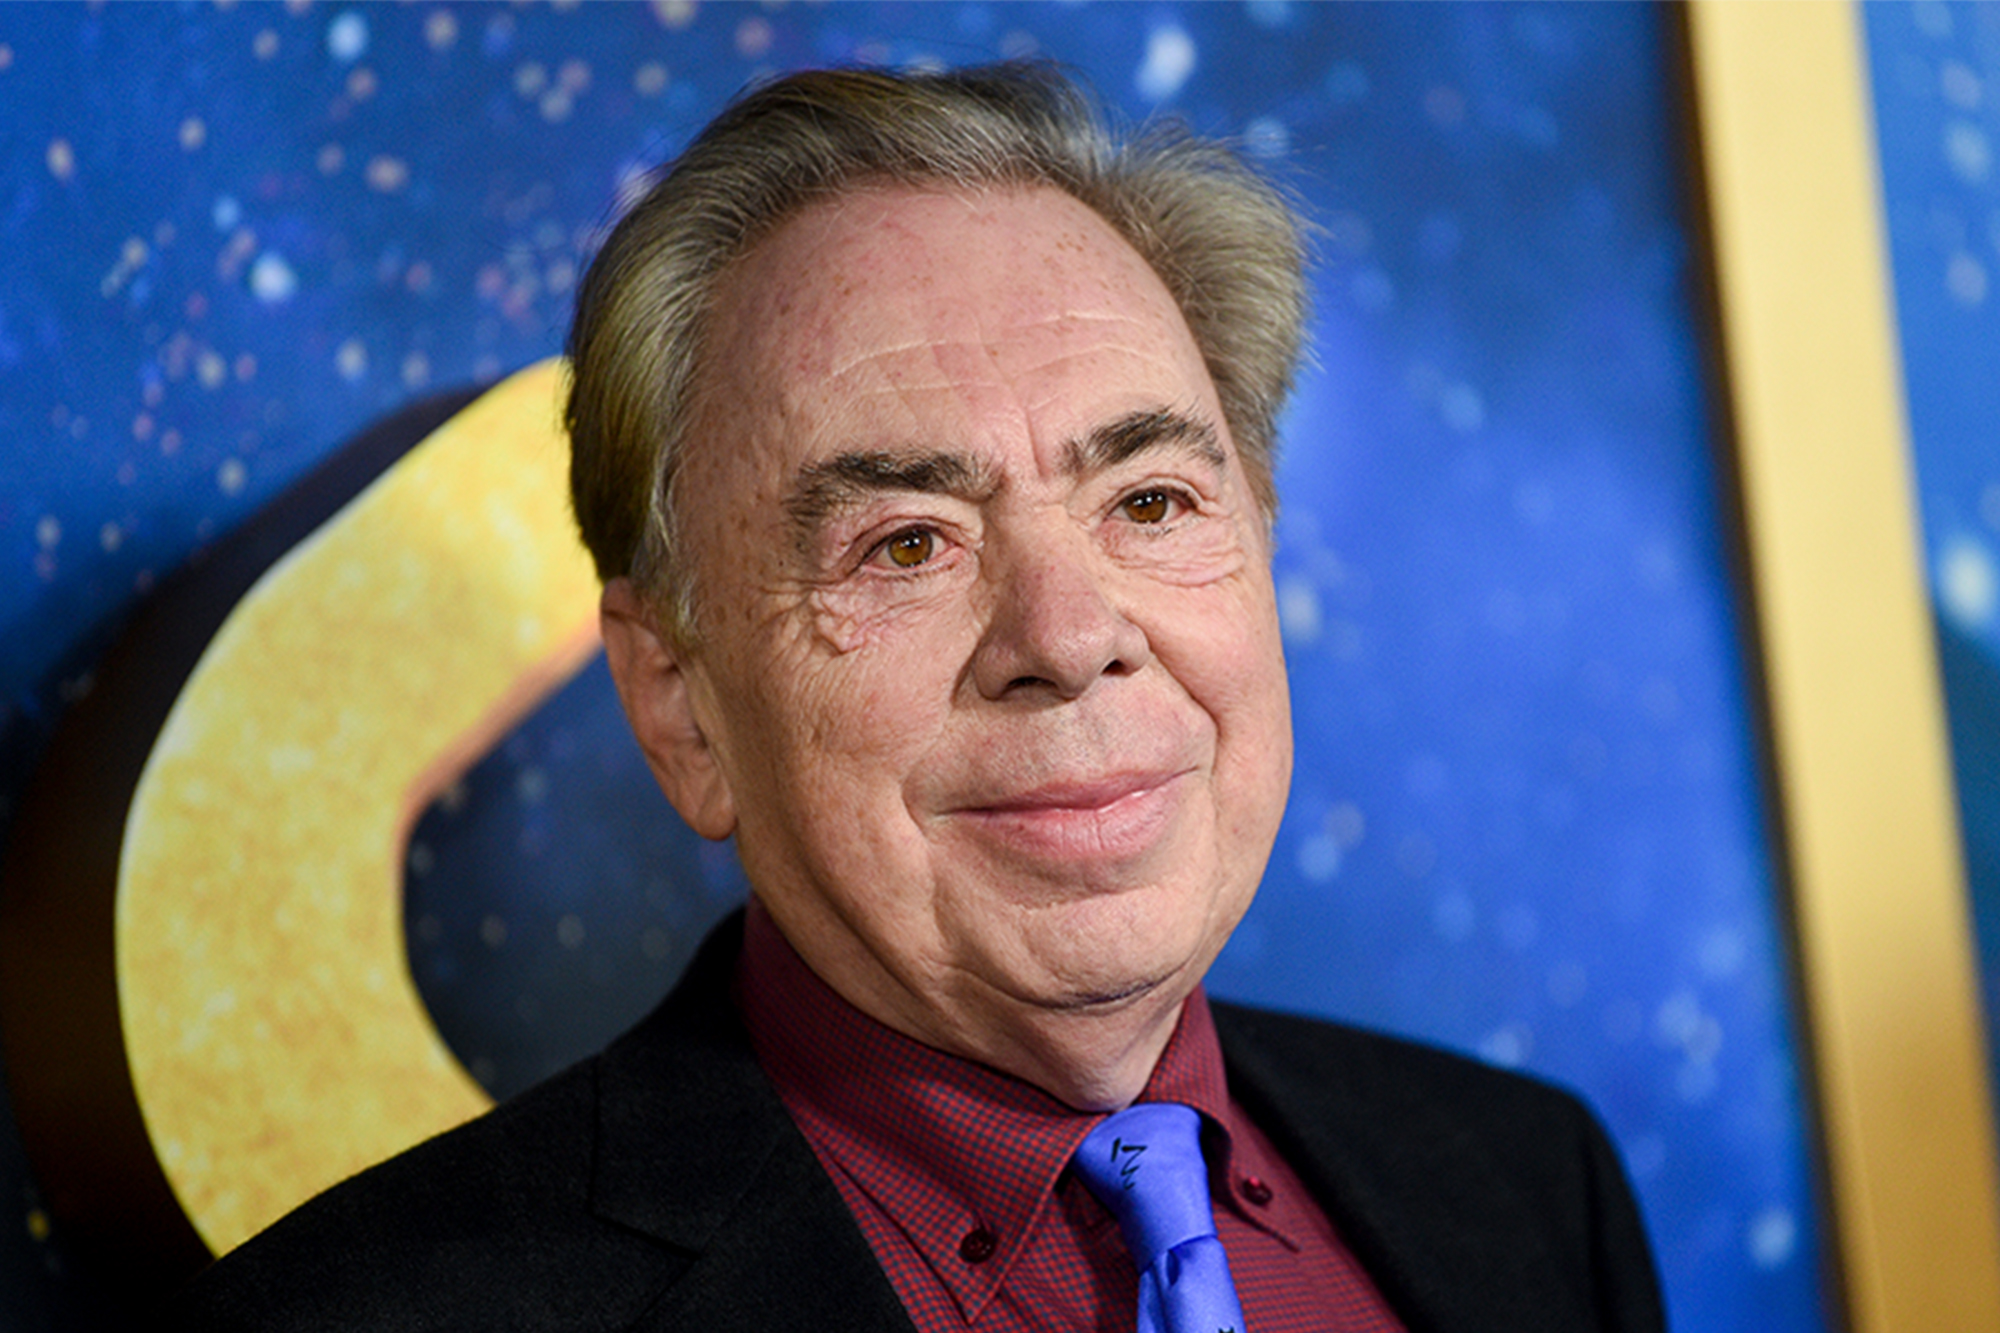 Andrew Lloyd Webber hopeful for Broadway as COVID-19 vaccine looms